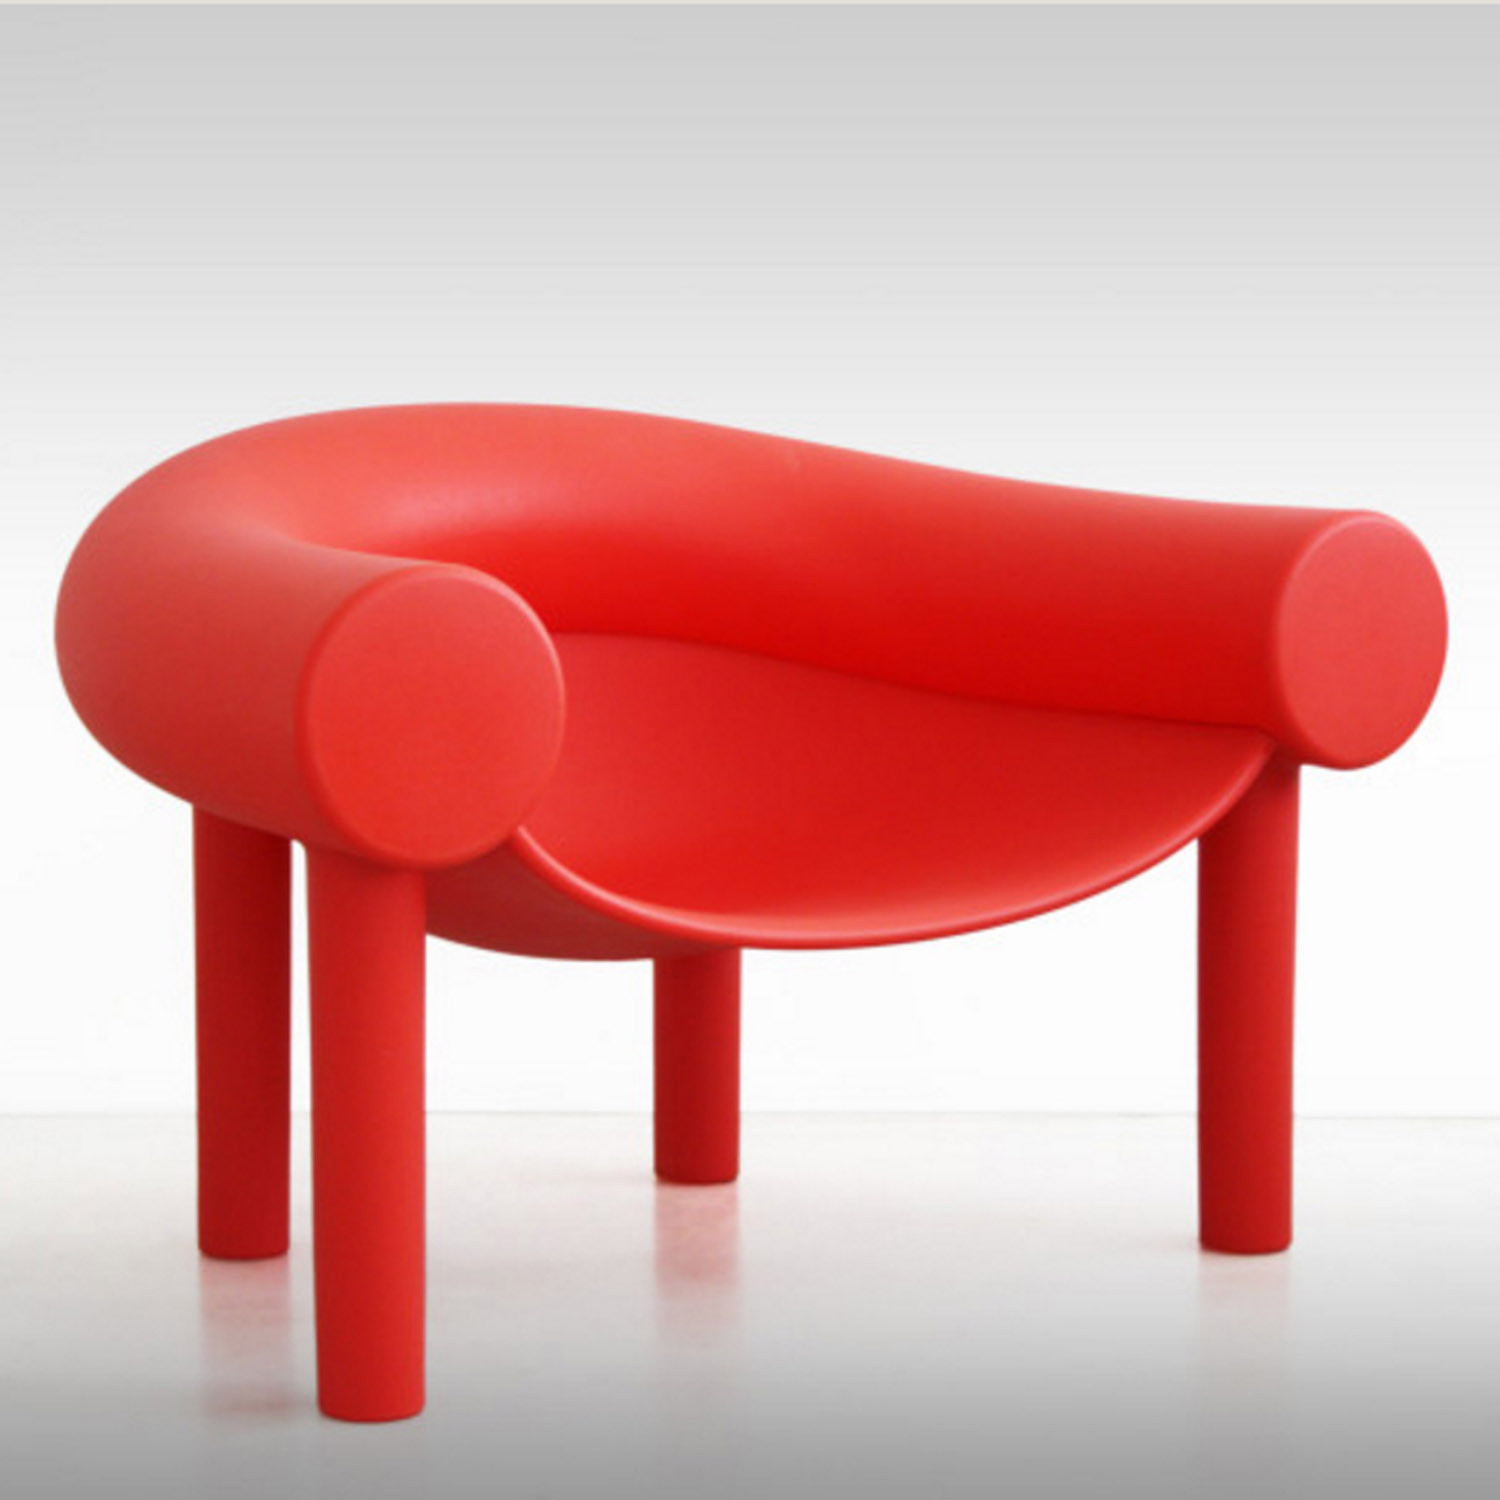 Sam Son Armchair by Konstantin Grcic